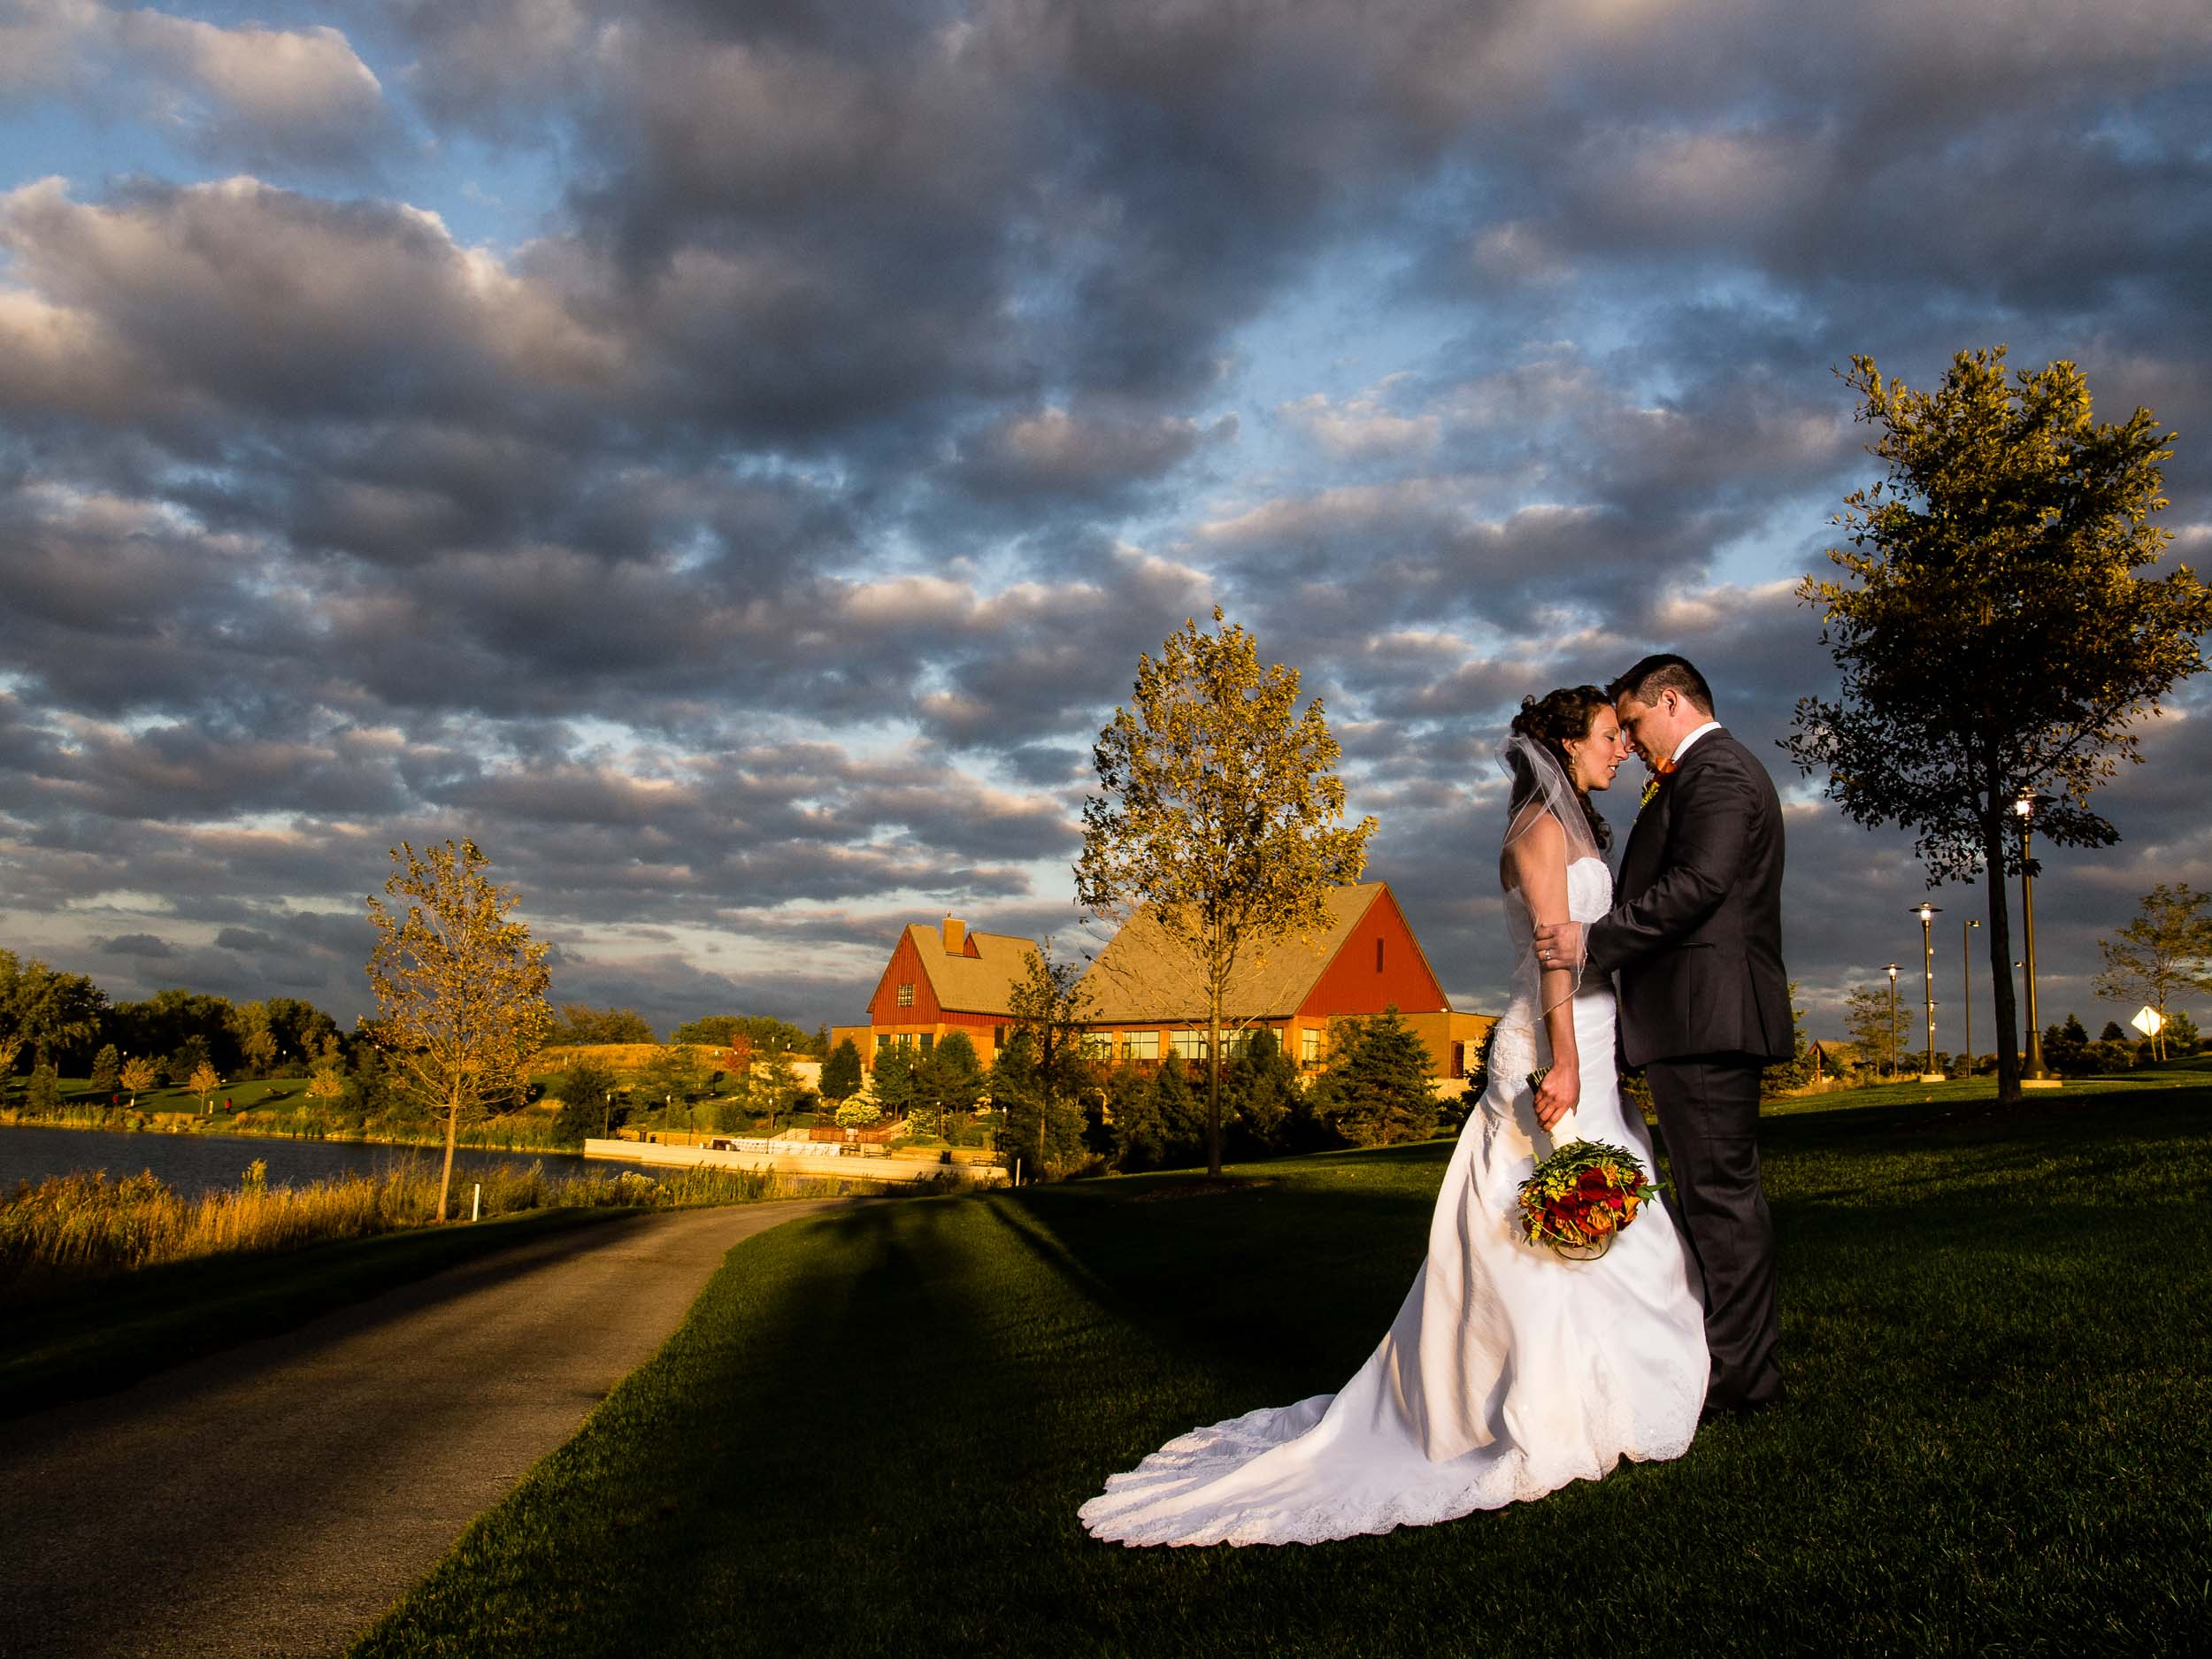 Bride and groom embrace at Centennial Park in Munster, Indiana.